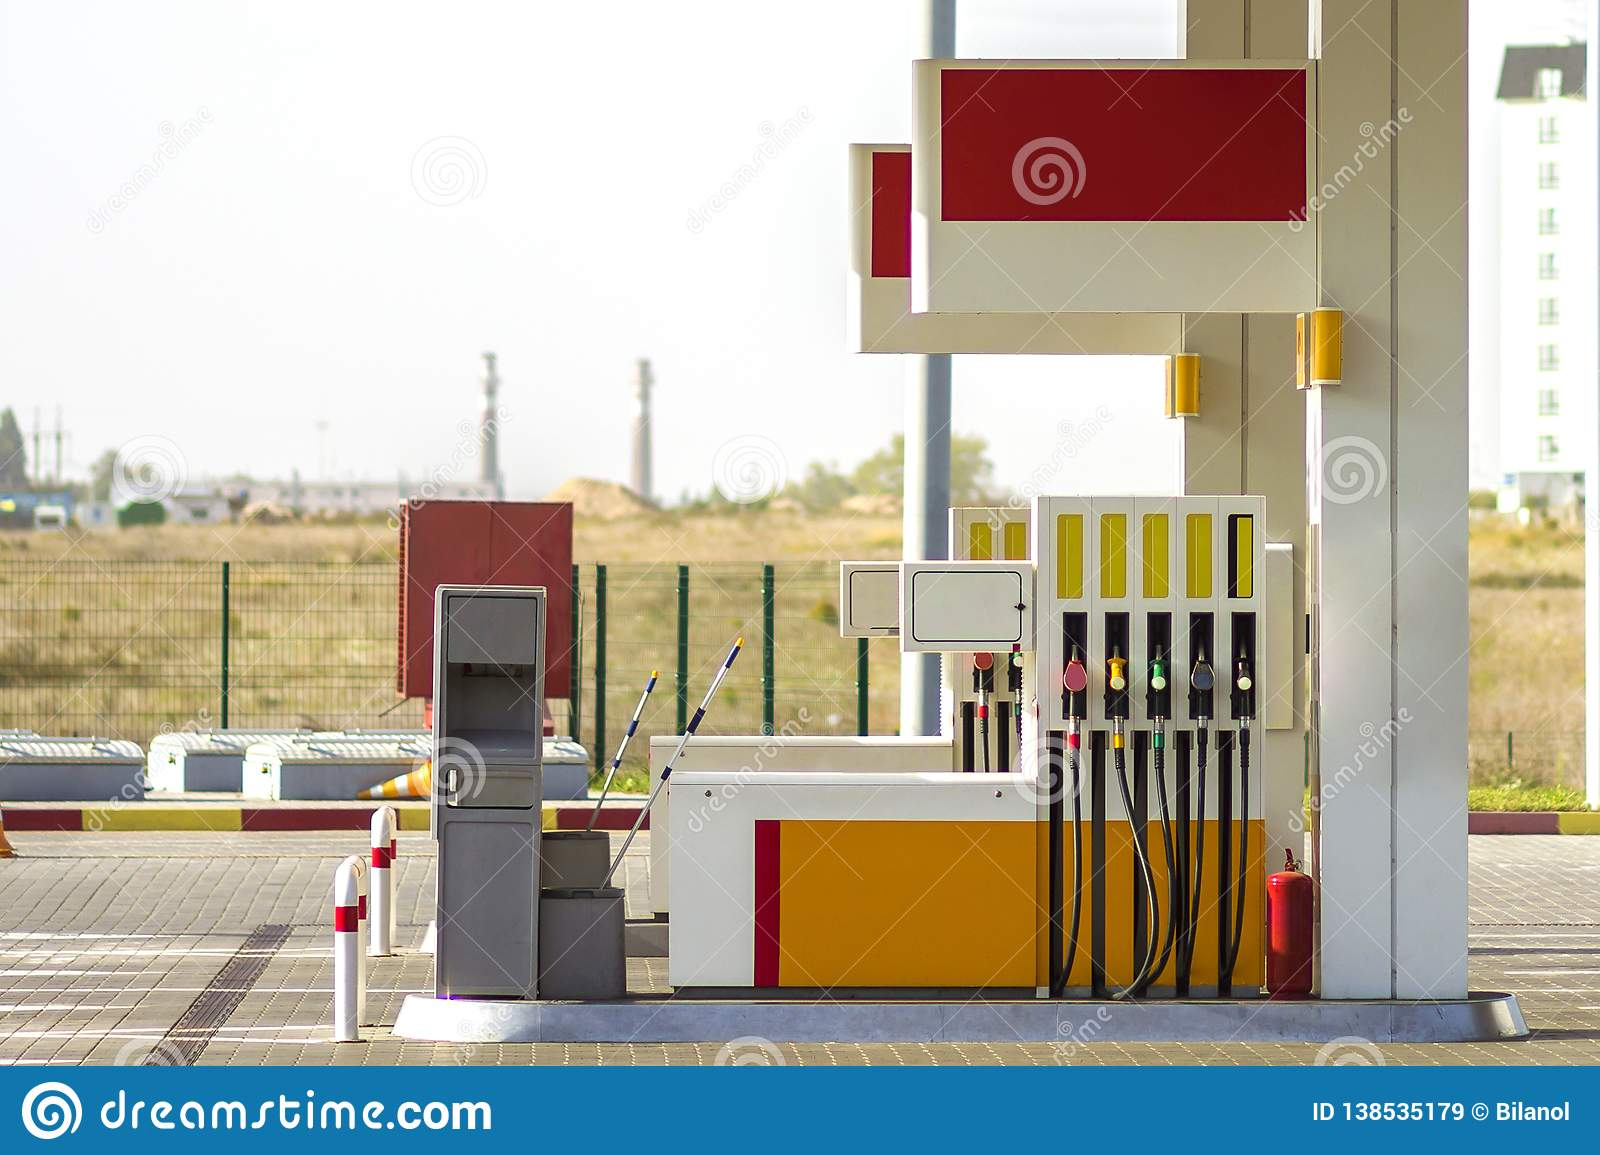 Clean empty auto gas station exterior on sunny day on rural landscape and bright sky copy space background